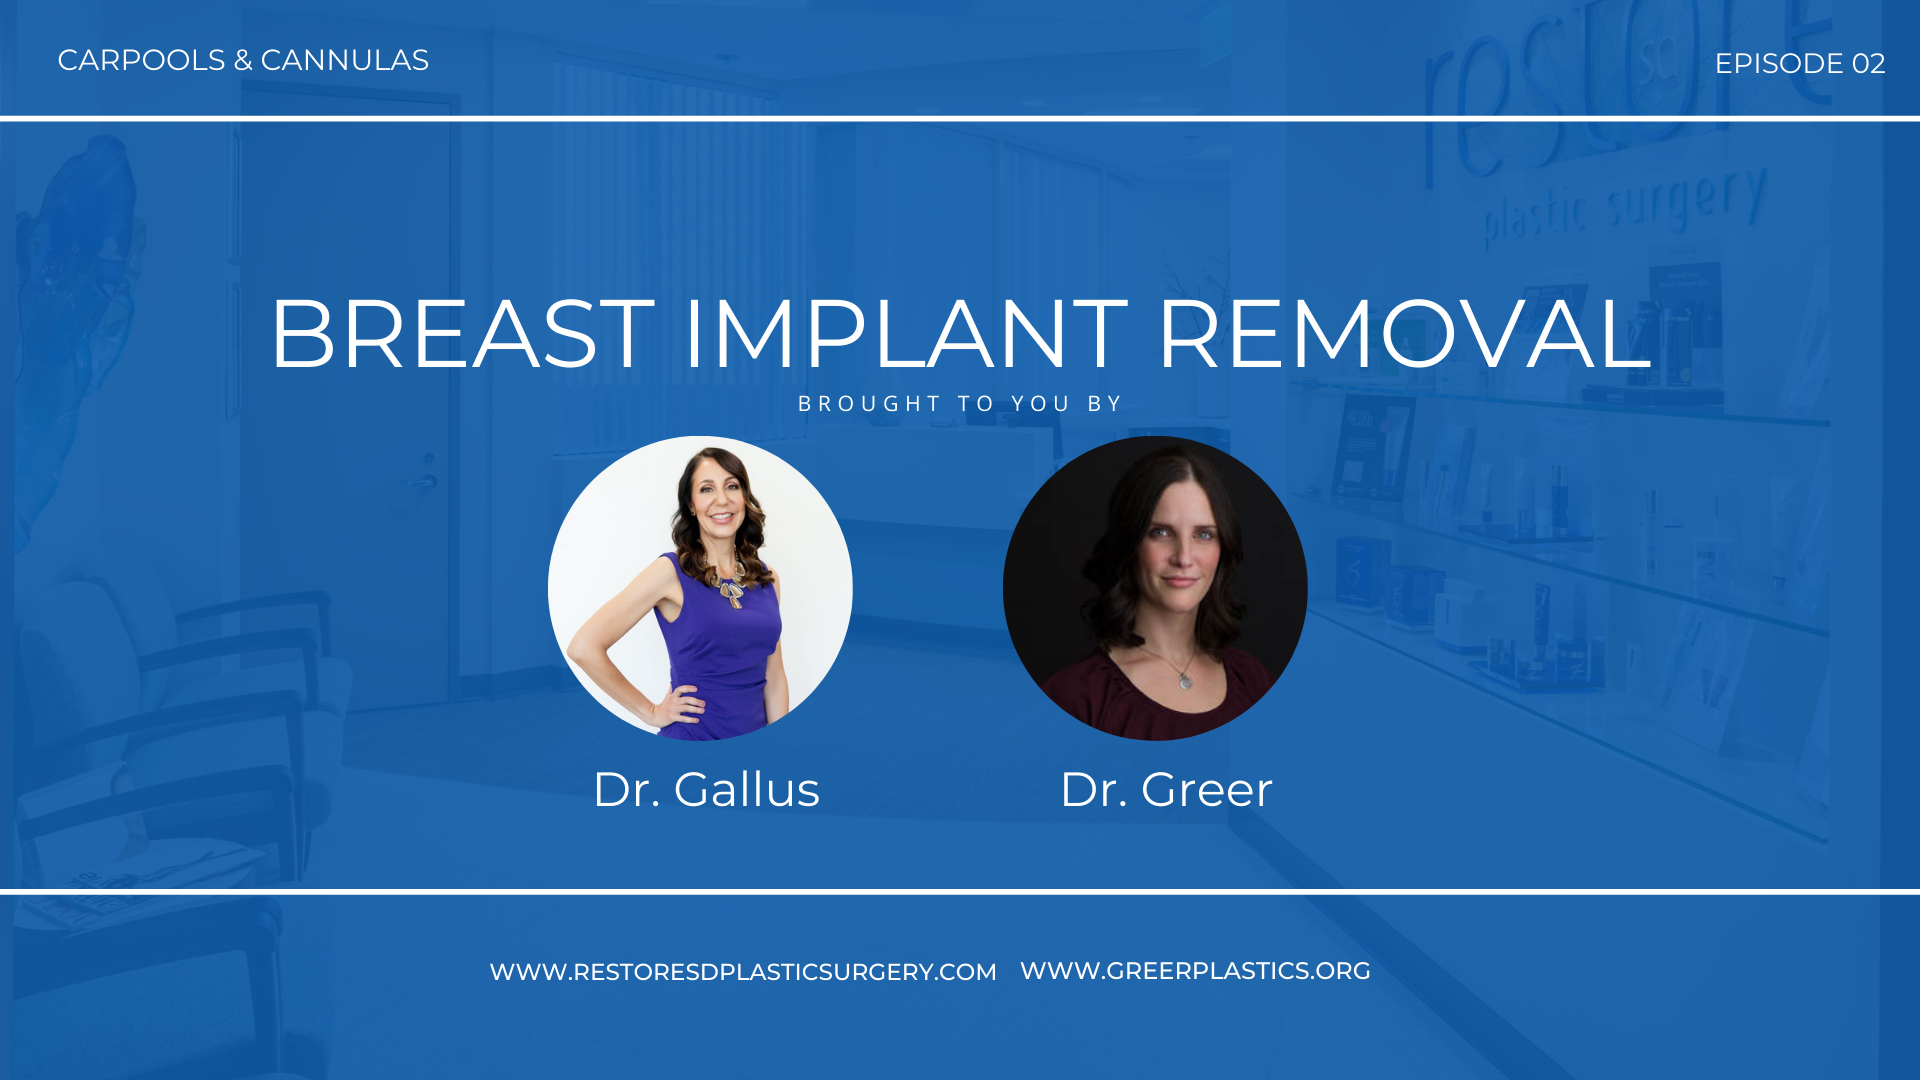 Carpools & Cannulas Episode 2 Breast Implant Removal